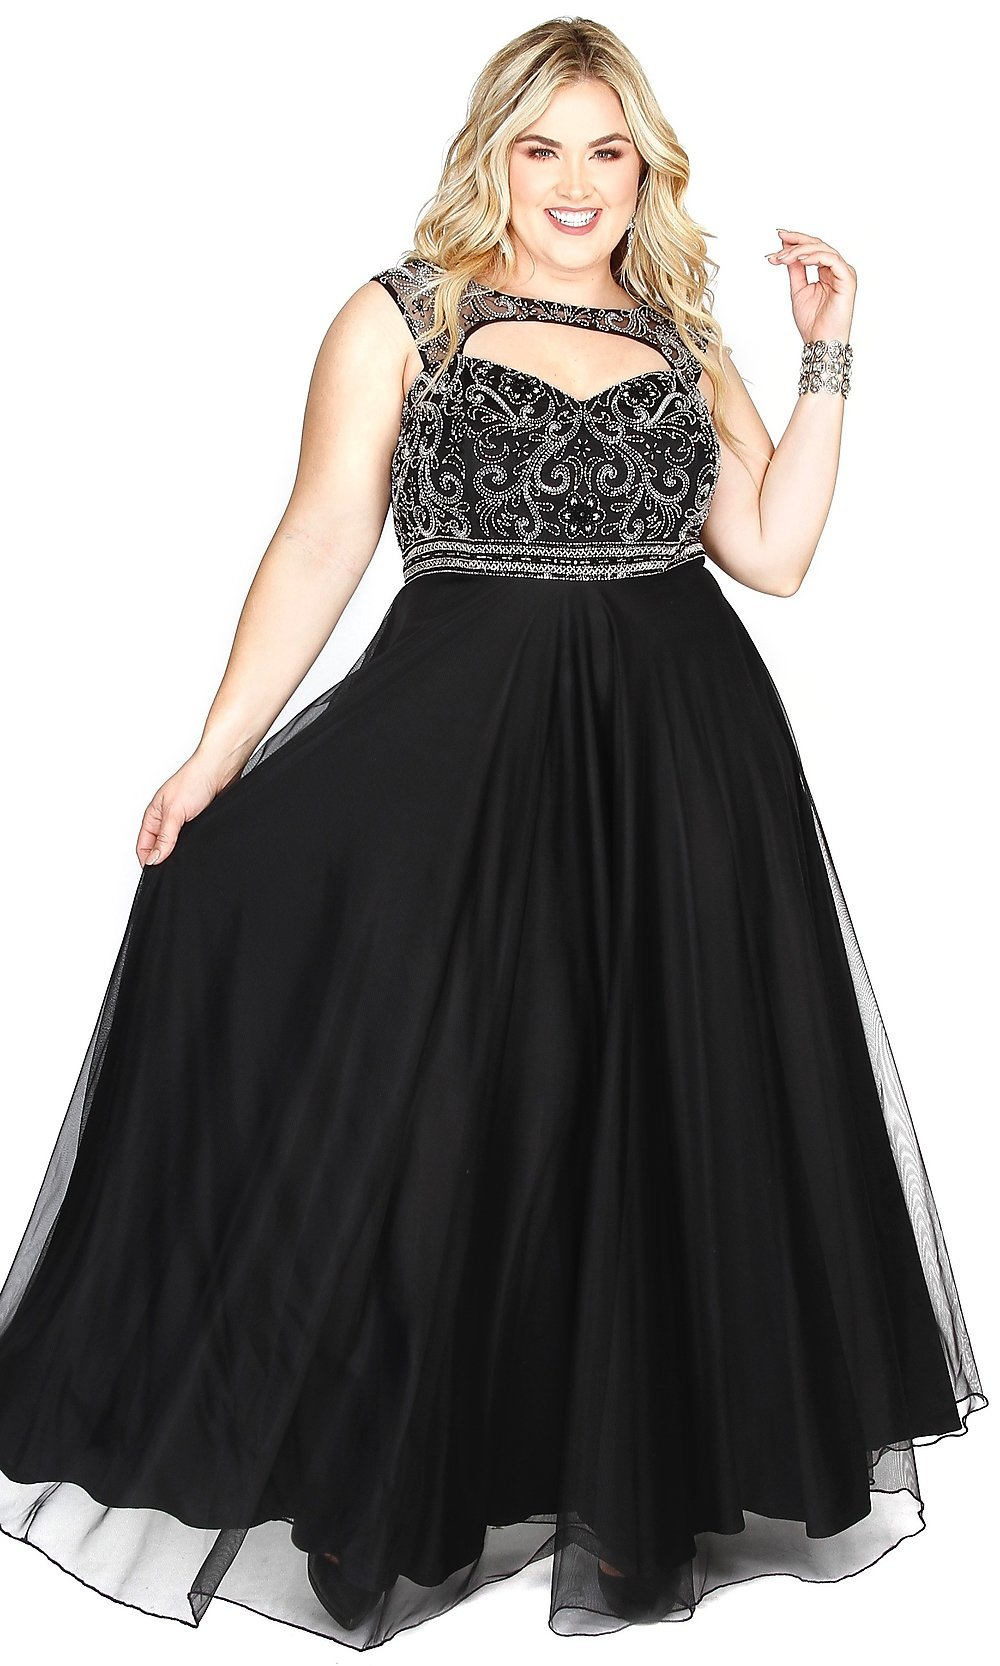 Sleeveless Empire-Waist Long Plus-Size Prom Dress